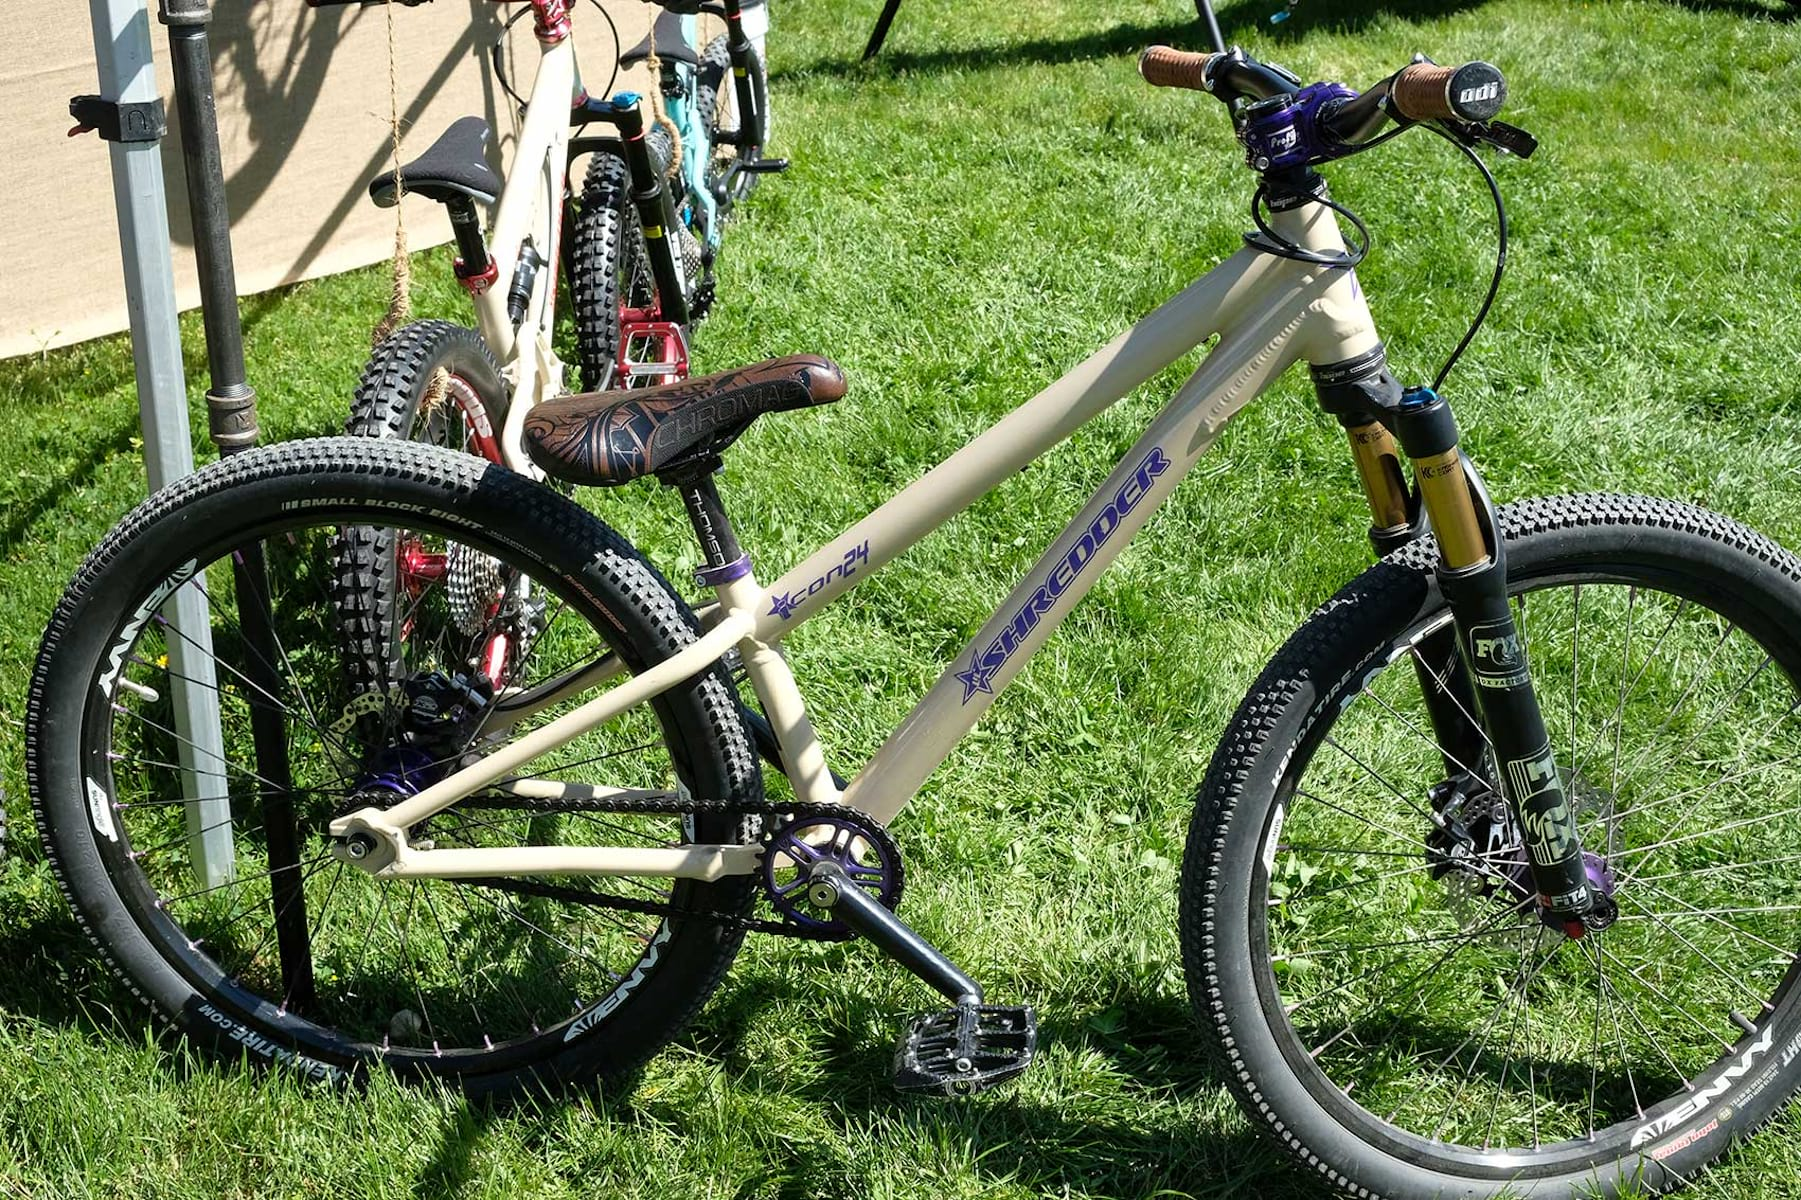 sea otter classic 2019, new products, shredder